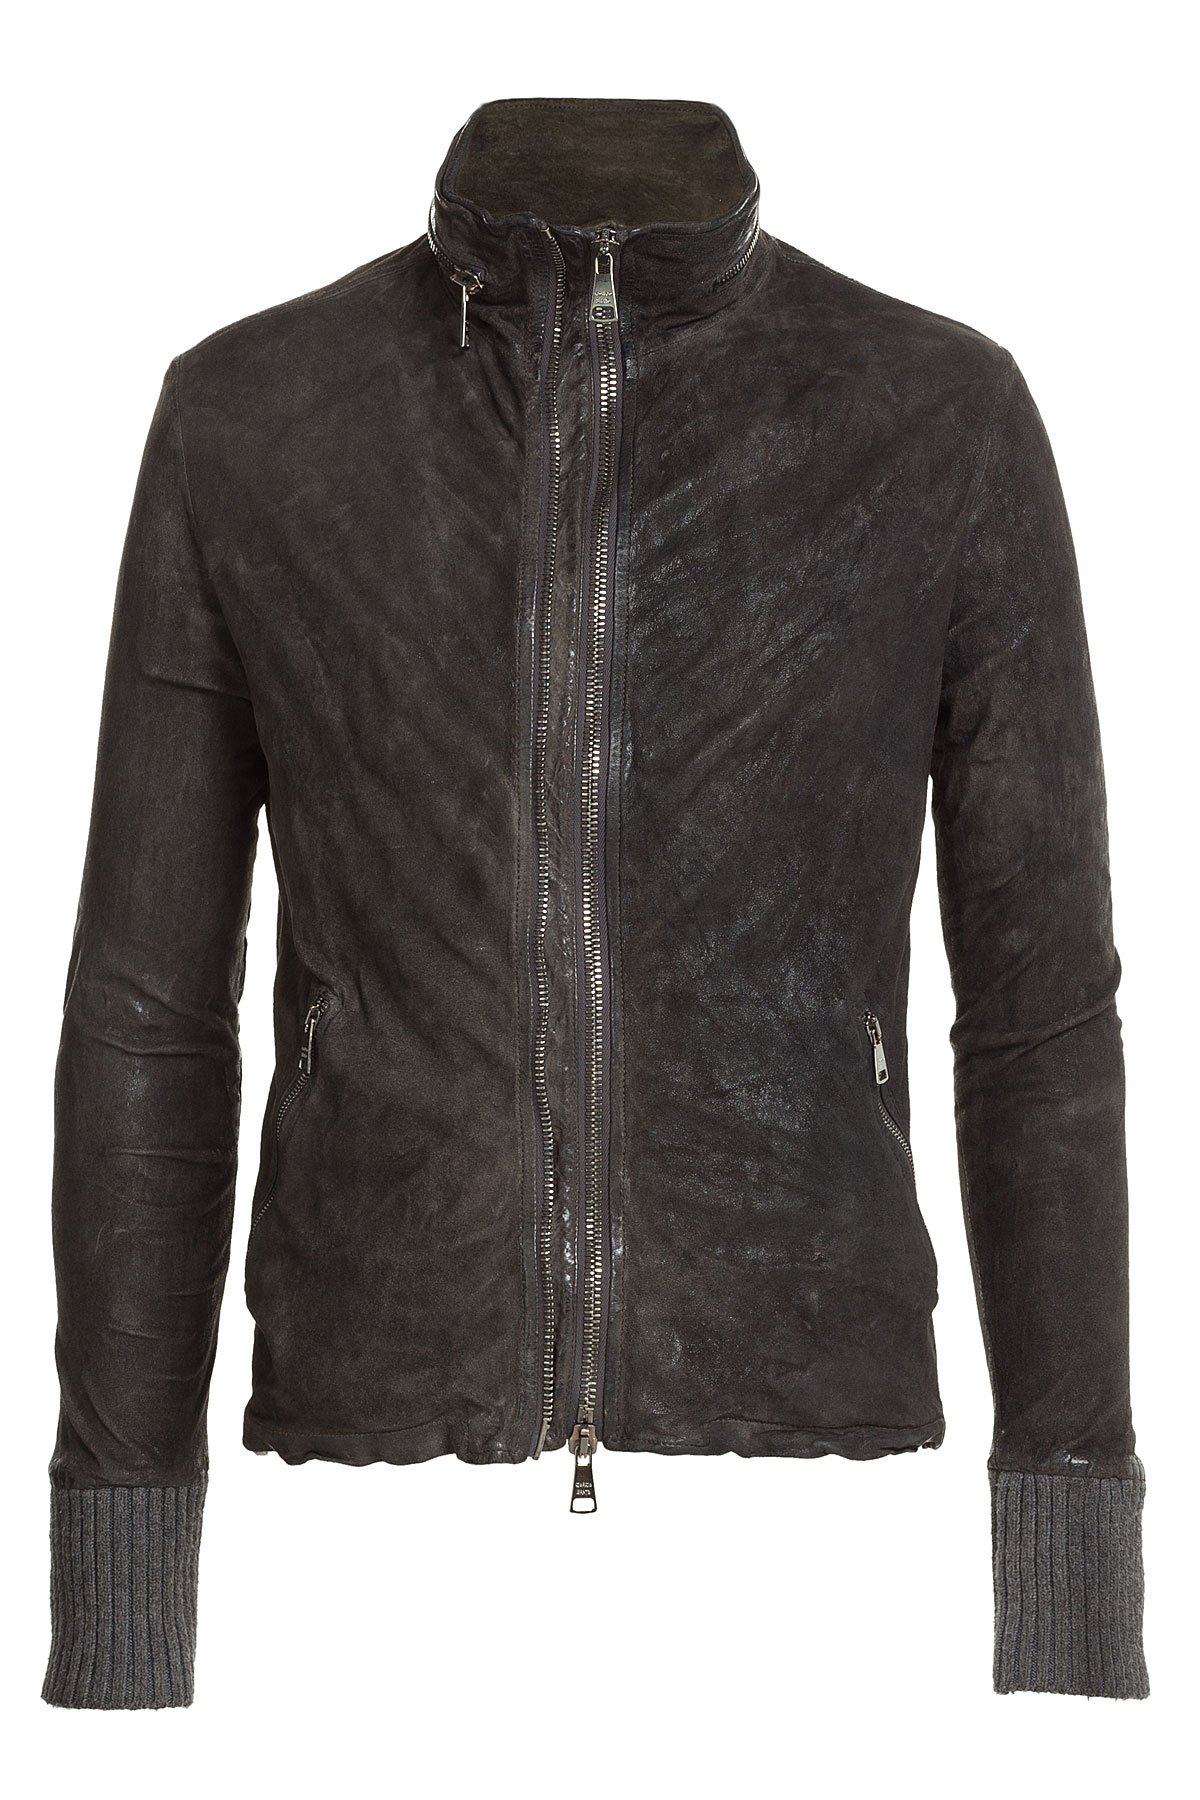 Suede Jacket Outfits For Men 20 Ways To Wear A Suede Jacket: Giorgio Brato Distressed Suede Jacket